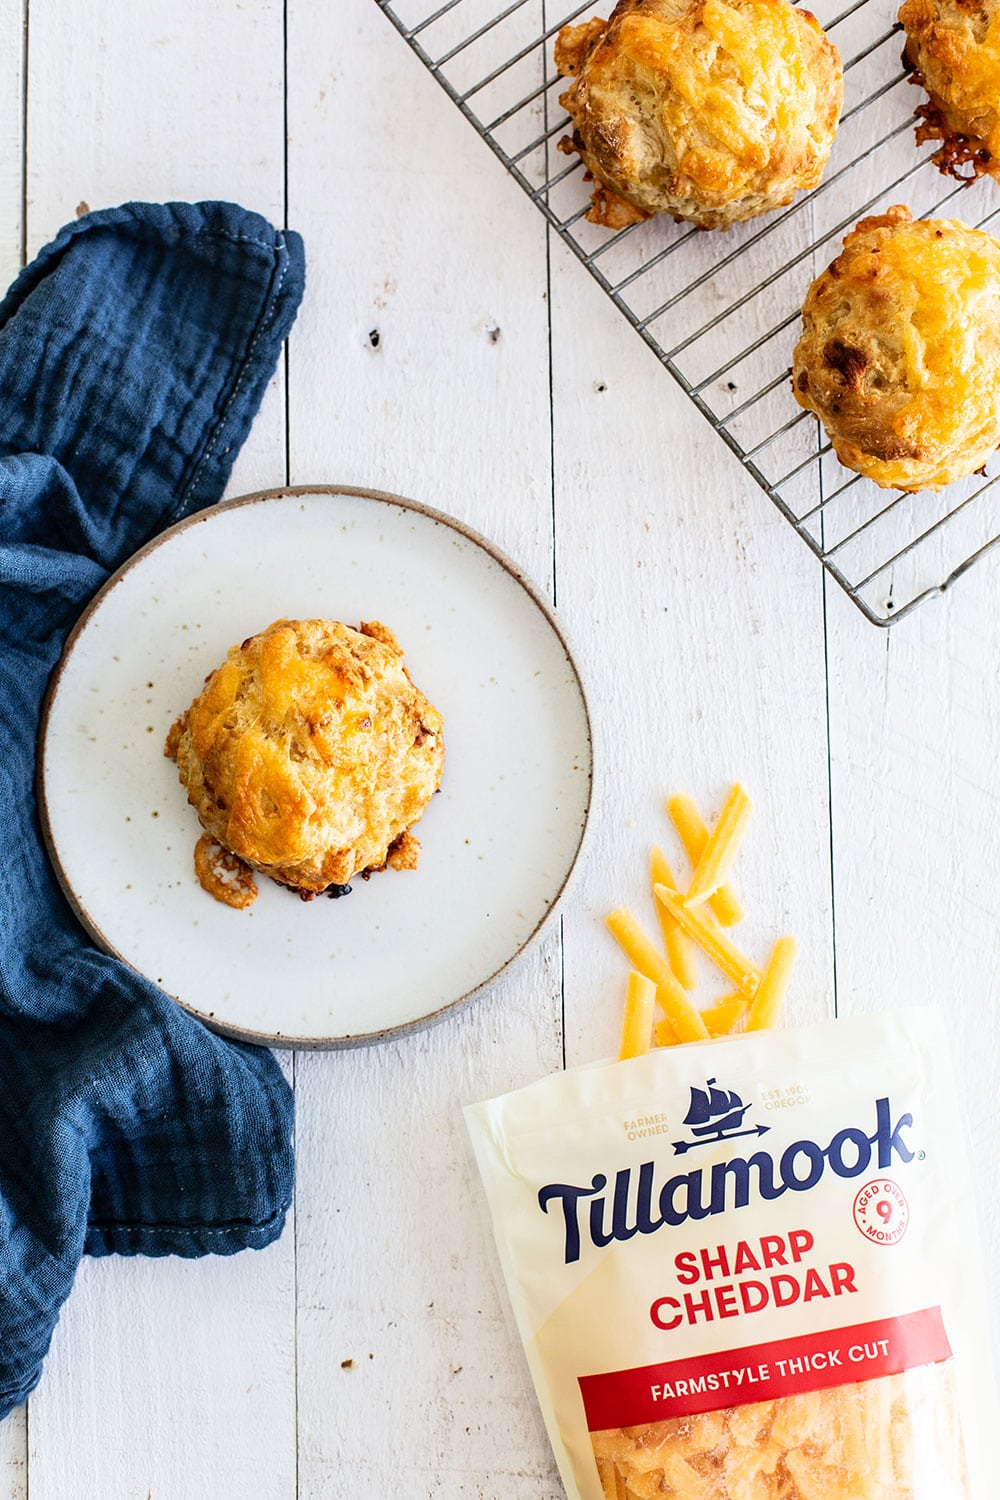 Cheddar biscuits cooling on a rack with one plated and a bag of Tillamook sharp cheddar shreds